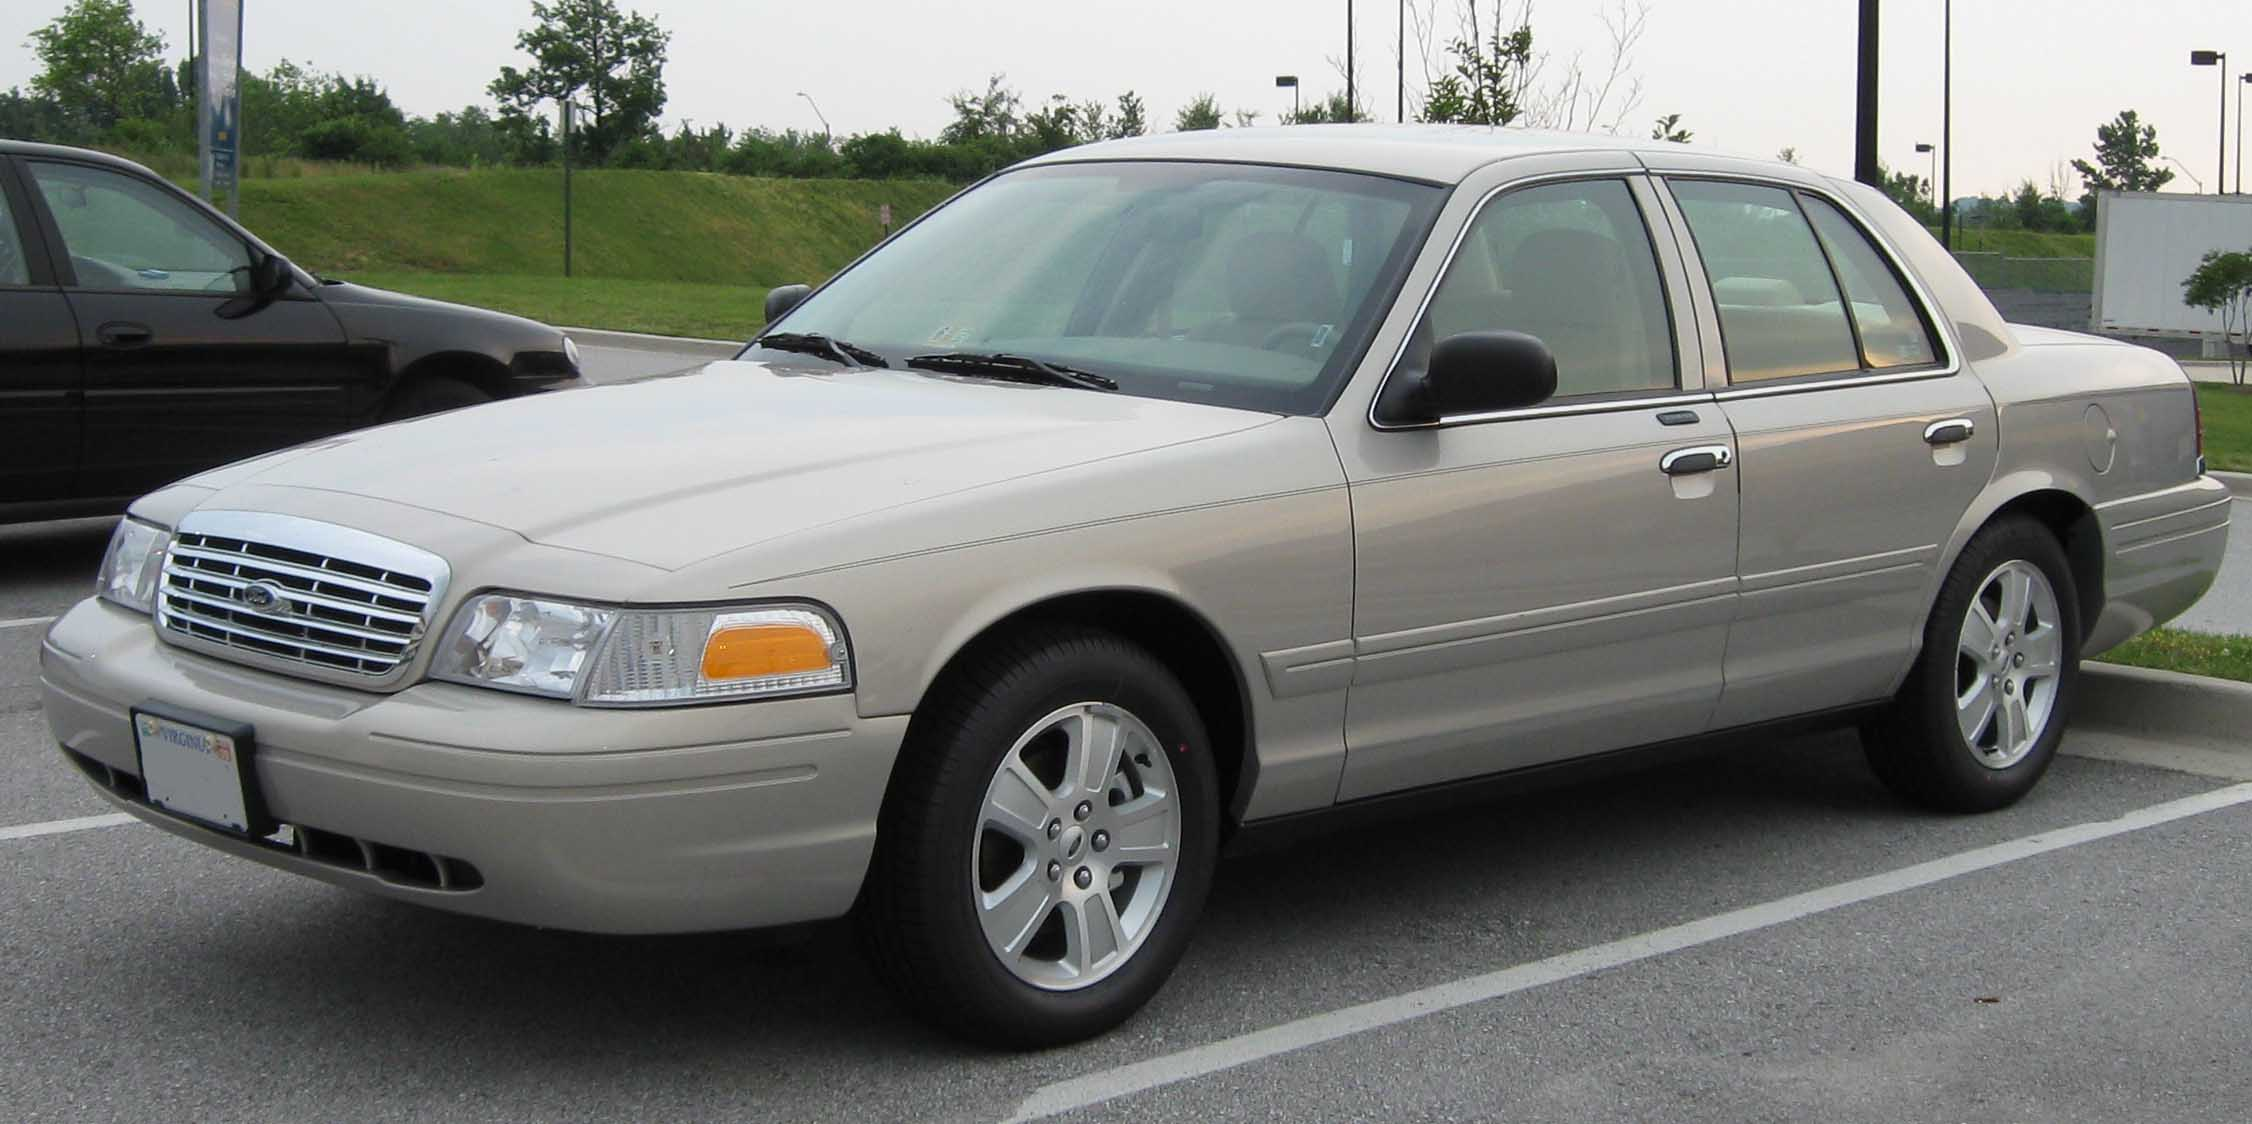 2004 Ford Crown Victoria #4